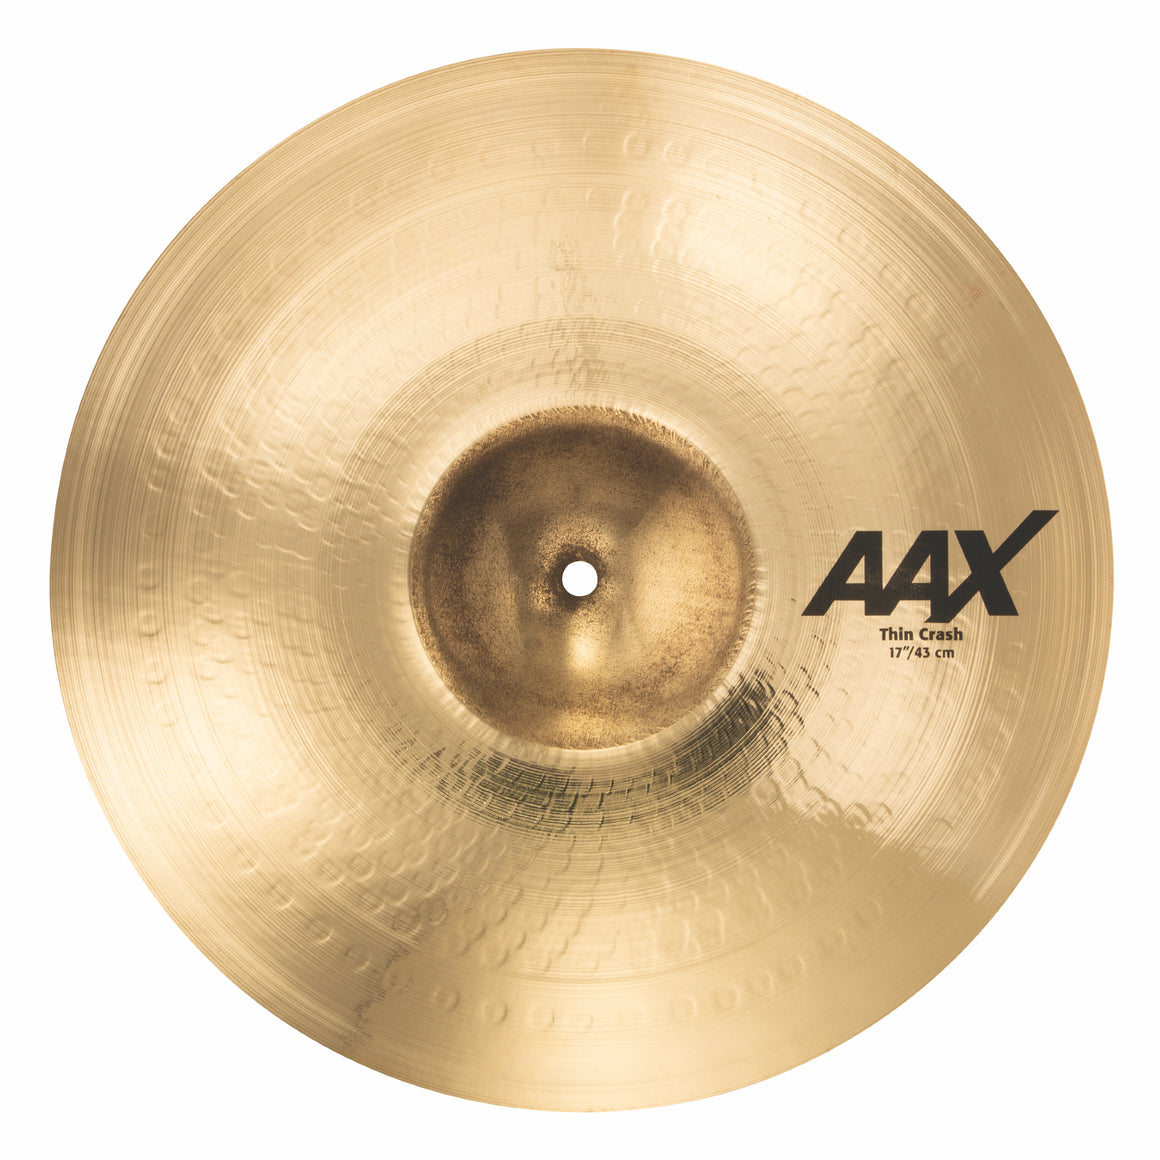 "Sabian 17"" AAX Thin Crash Cymbal"